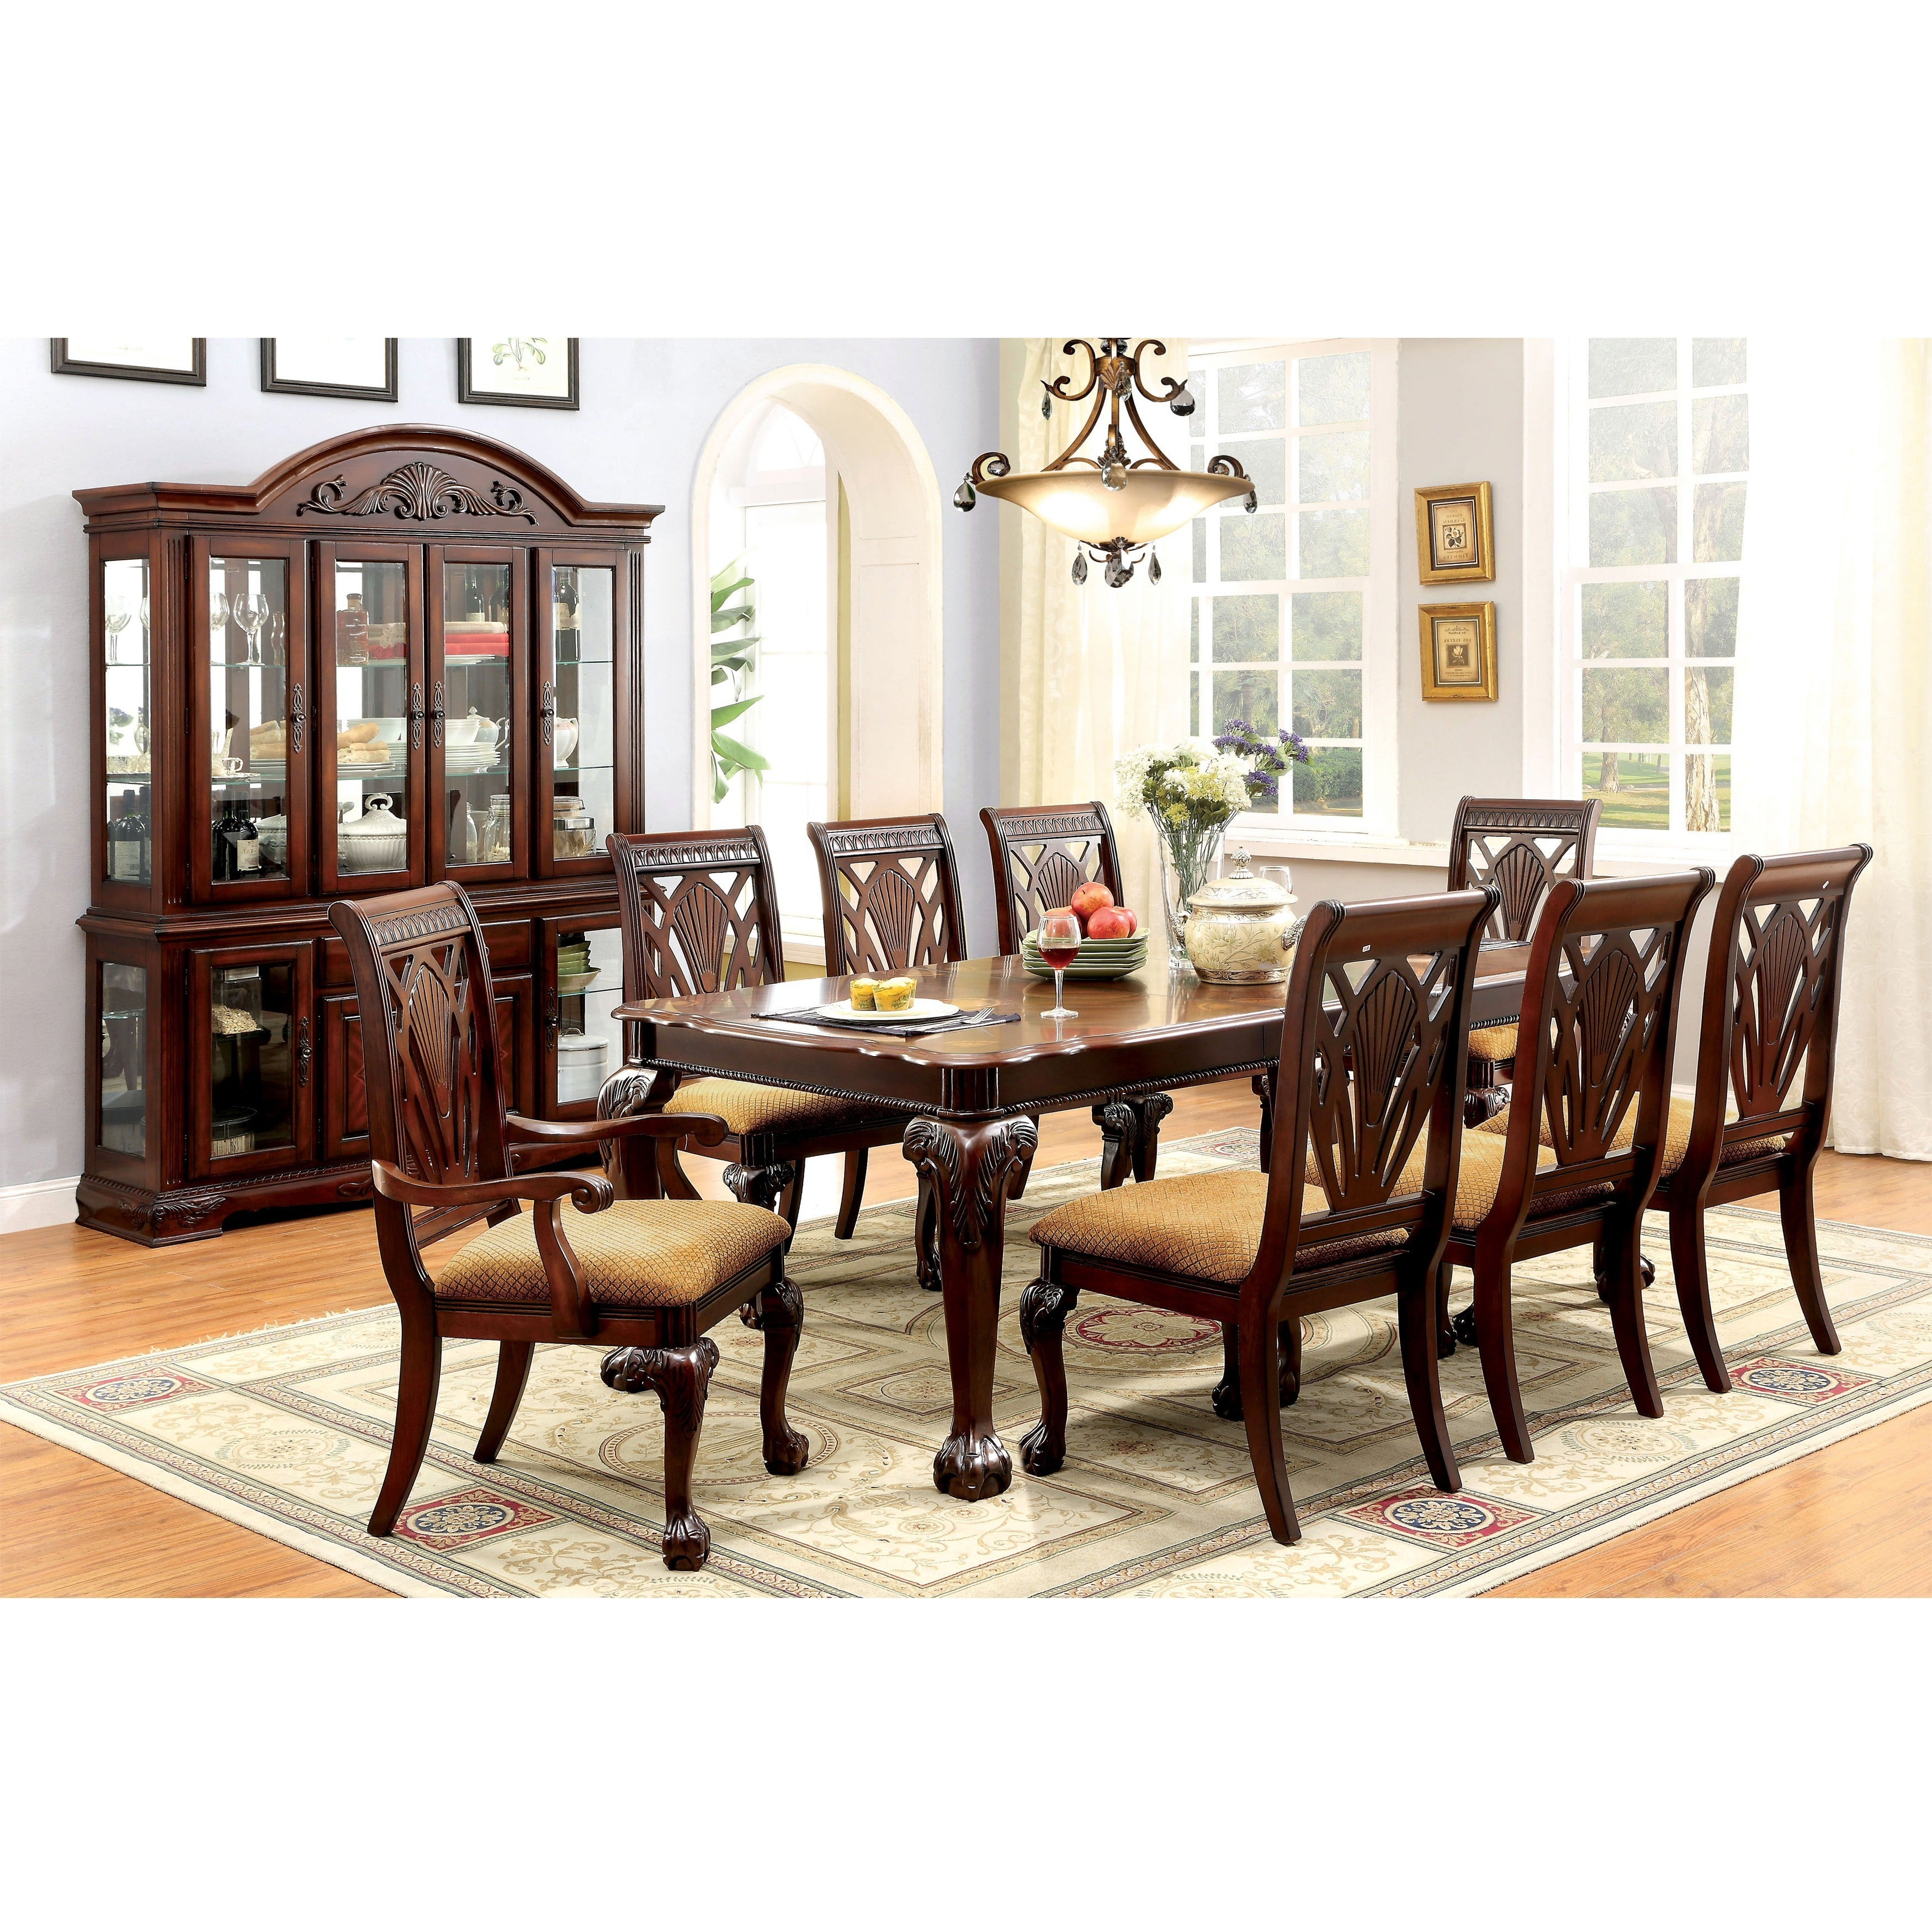 Furniture Of America Ranfort Formal 9 Piece Cherry Dining Set